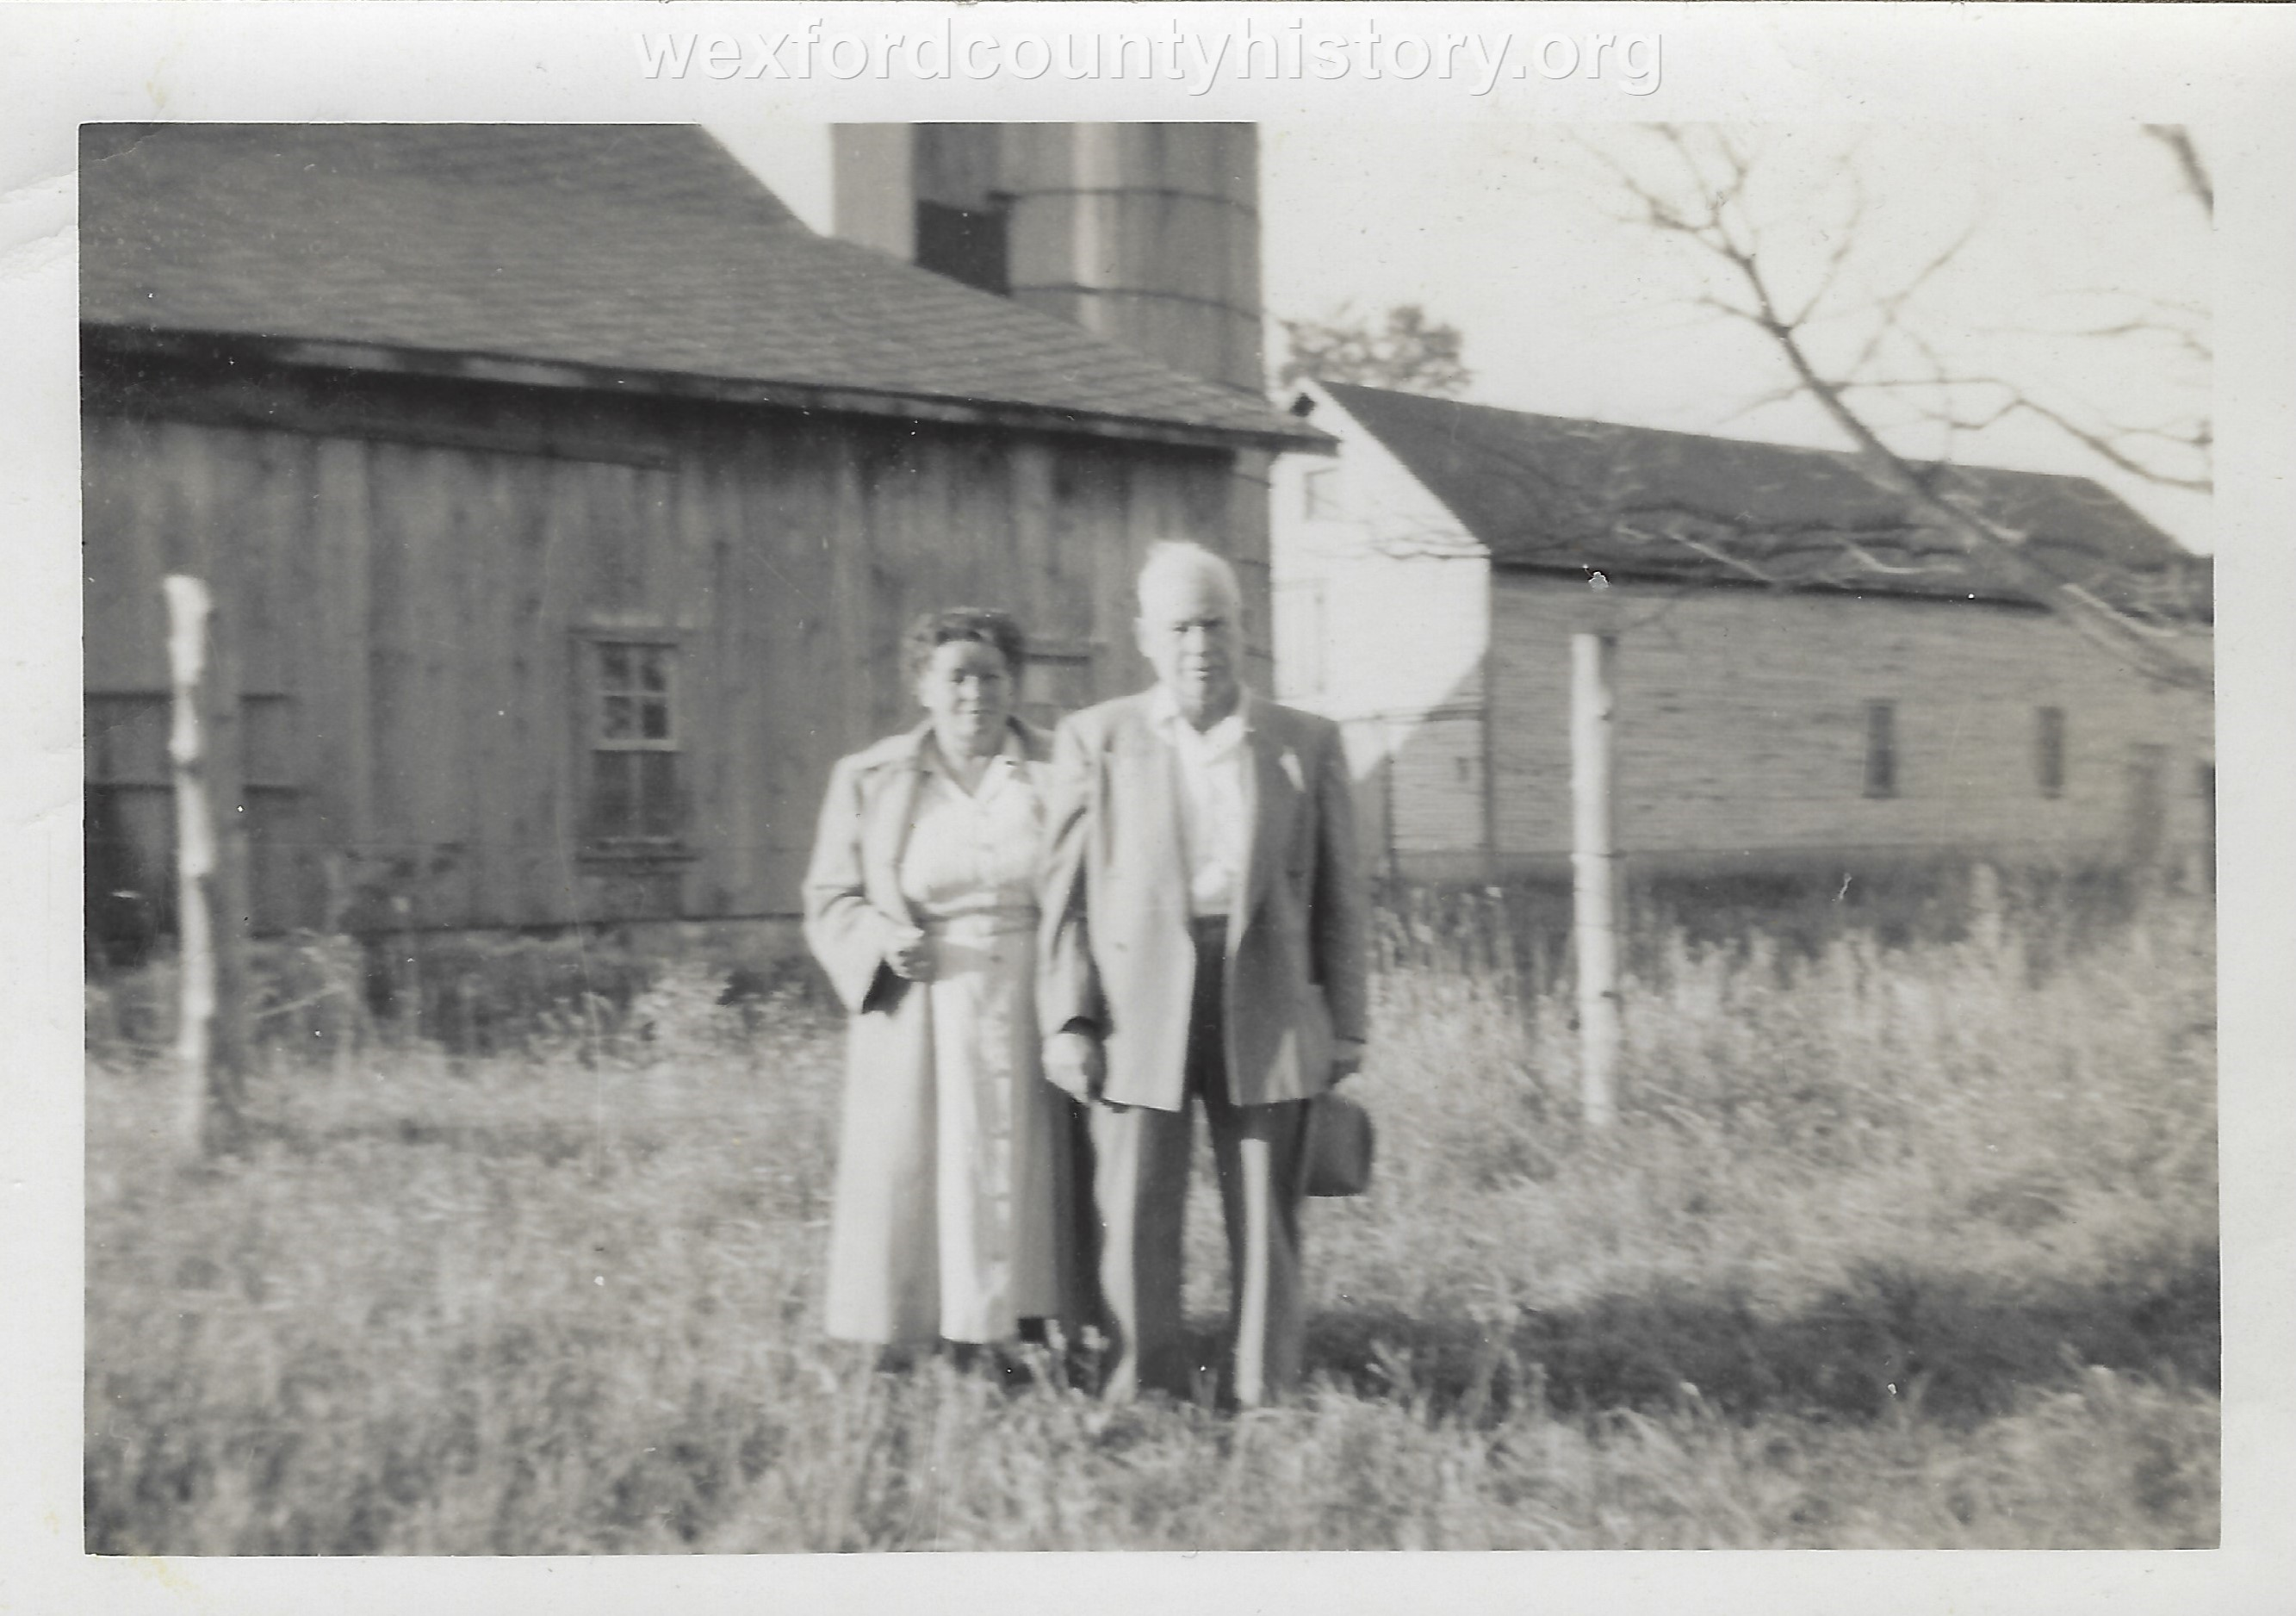 Harry And Essie Hargrave